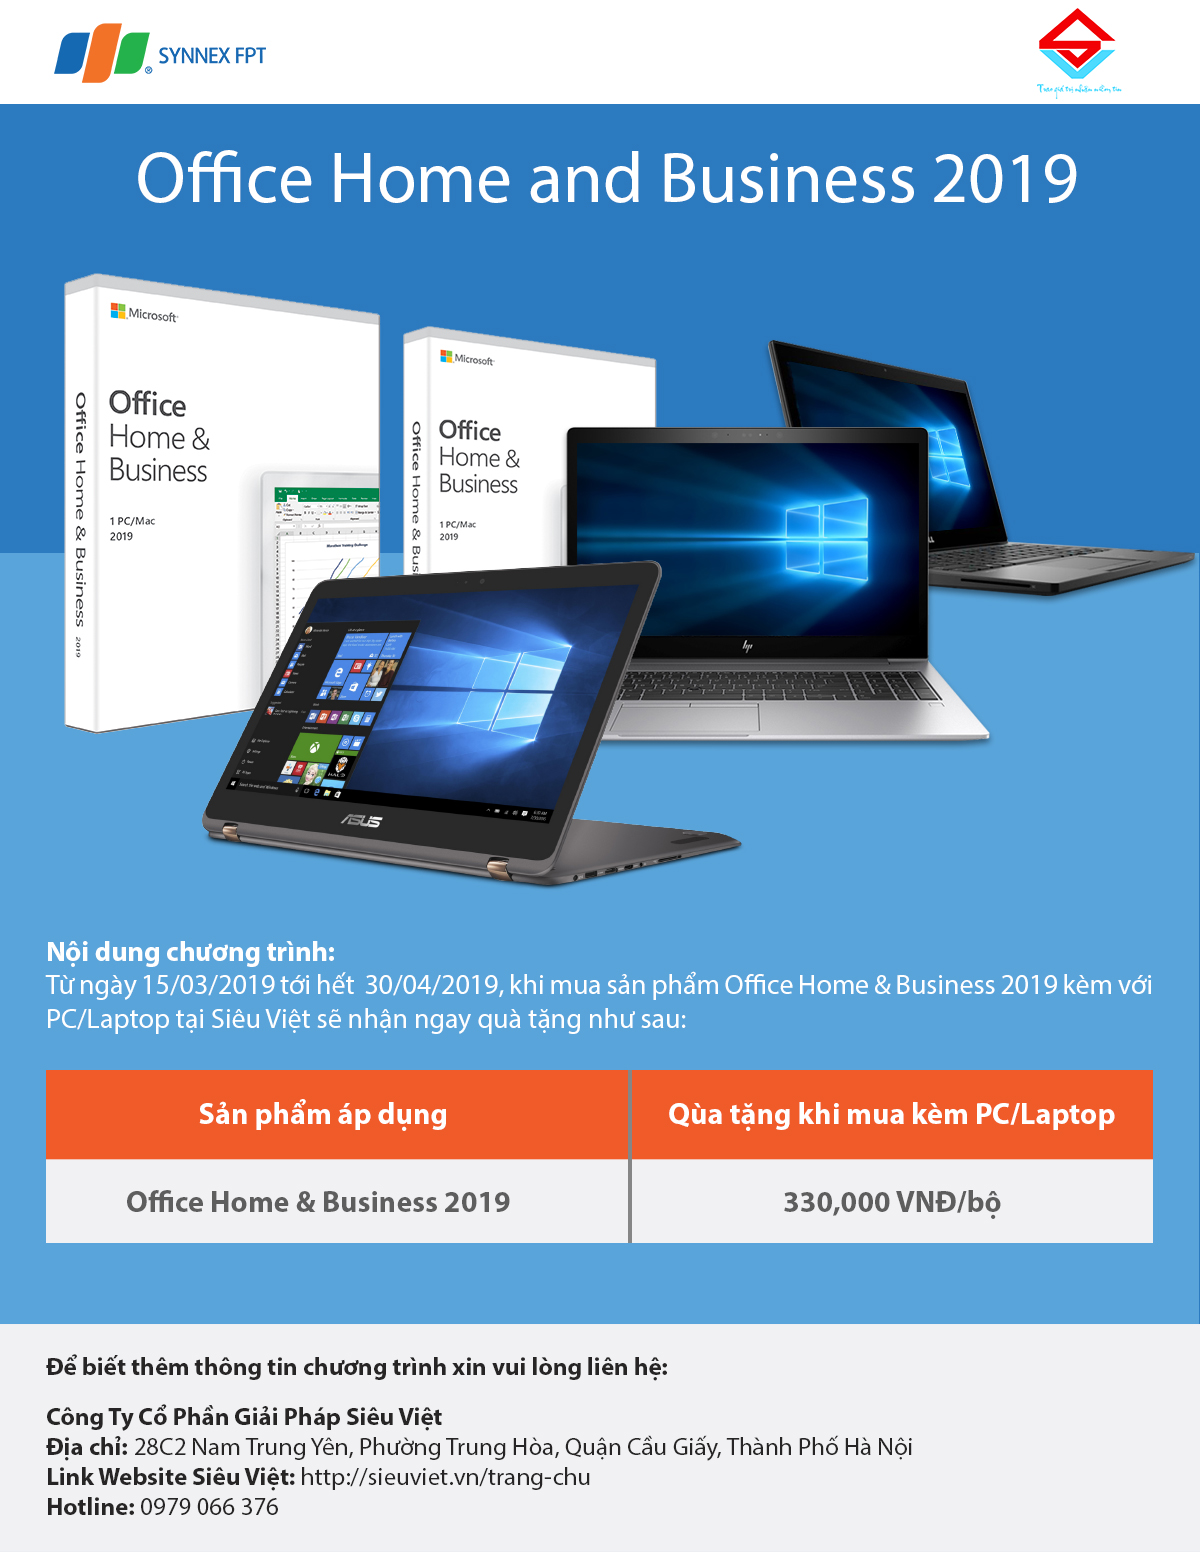 Office Home and Business 2019